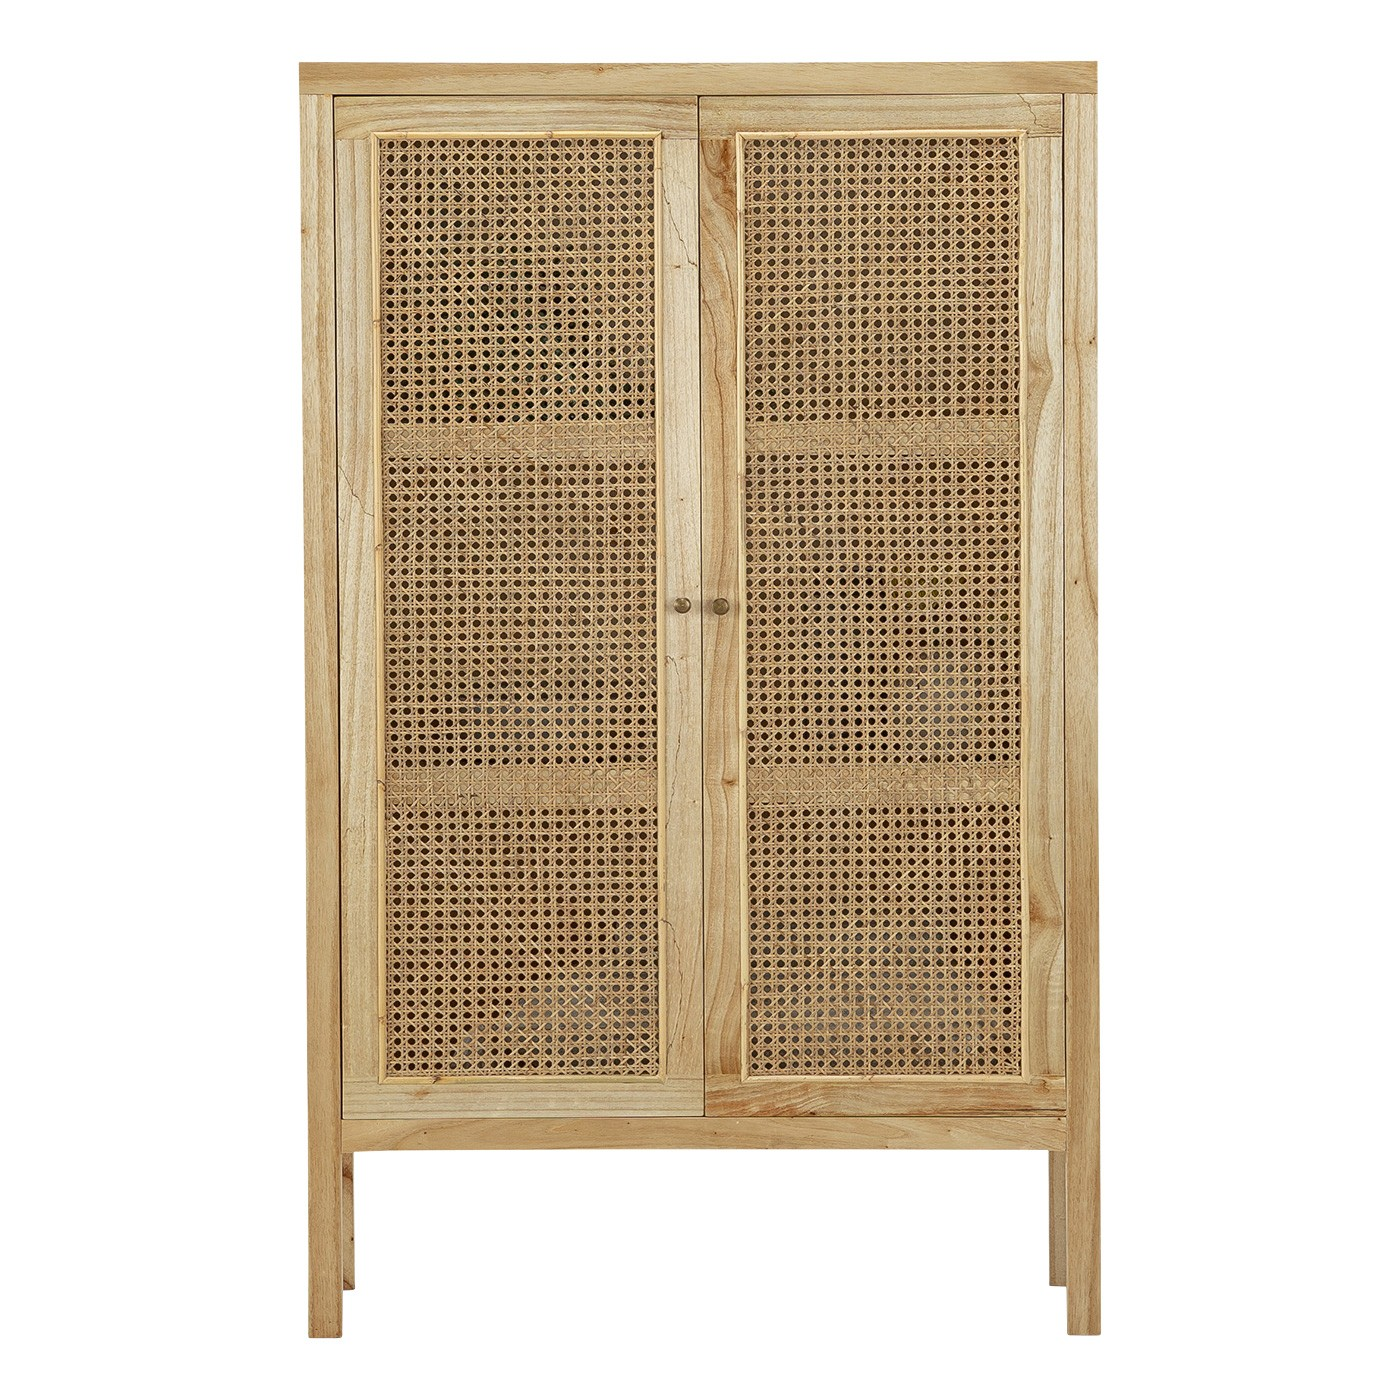 Atlanta Rattan & Mindi Wood 2 Door Cabinet, Natural